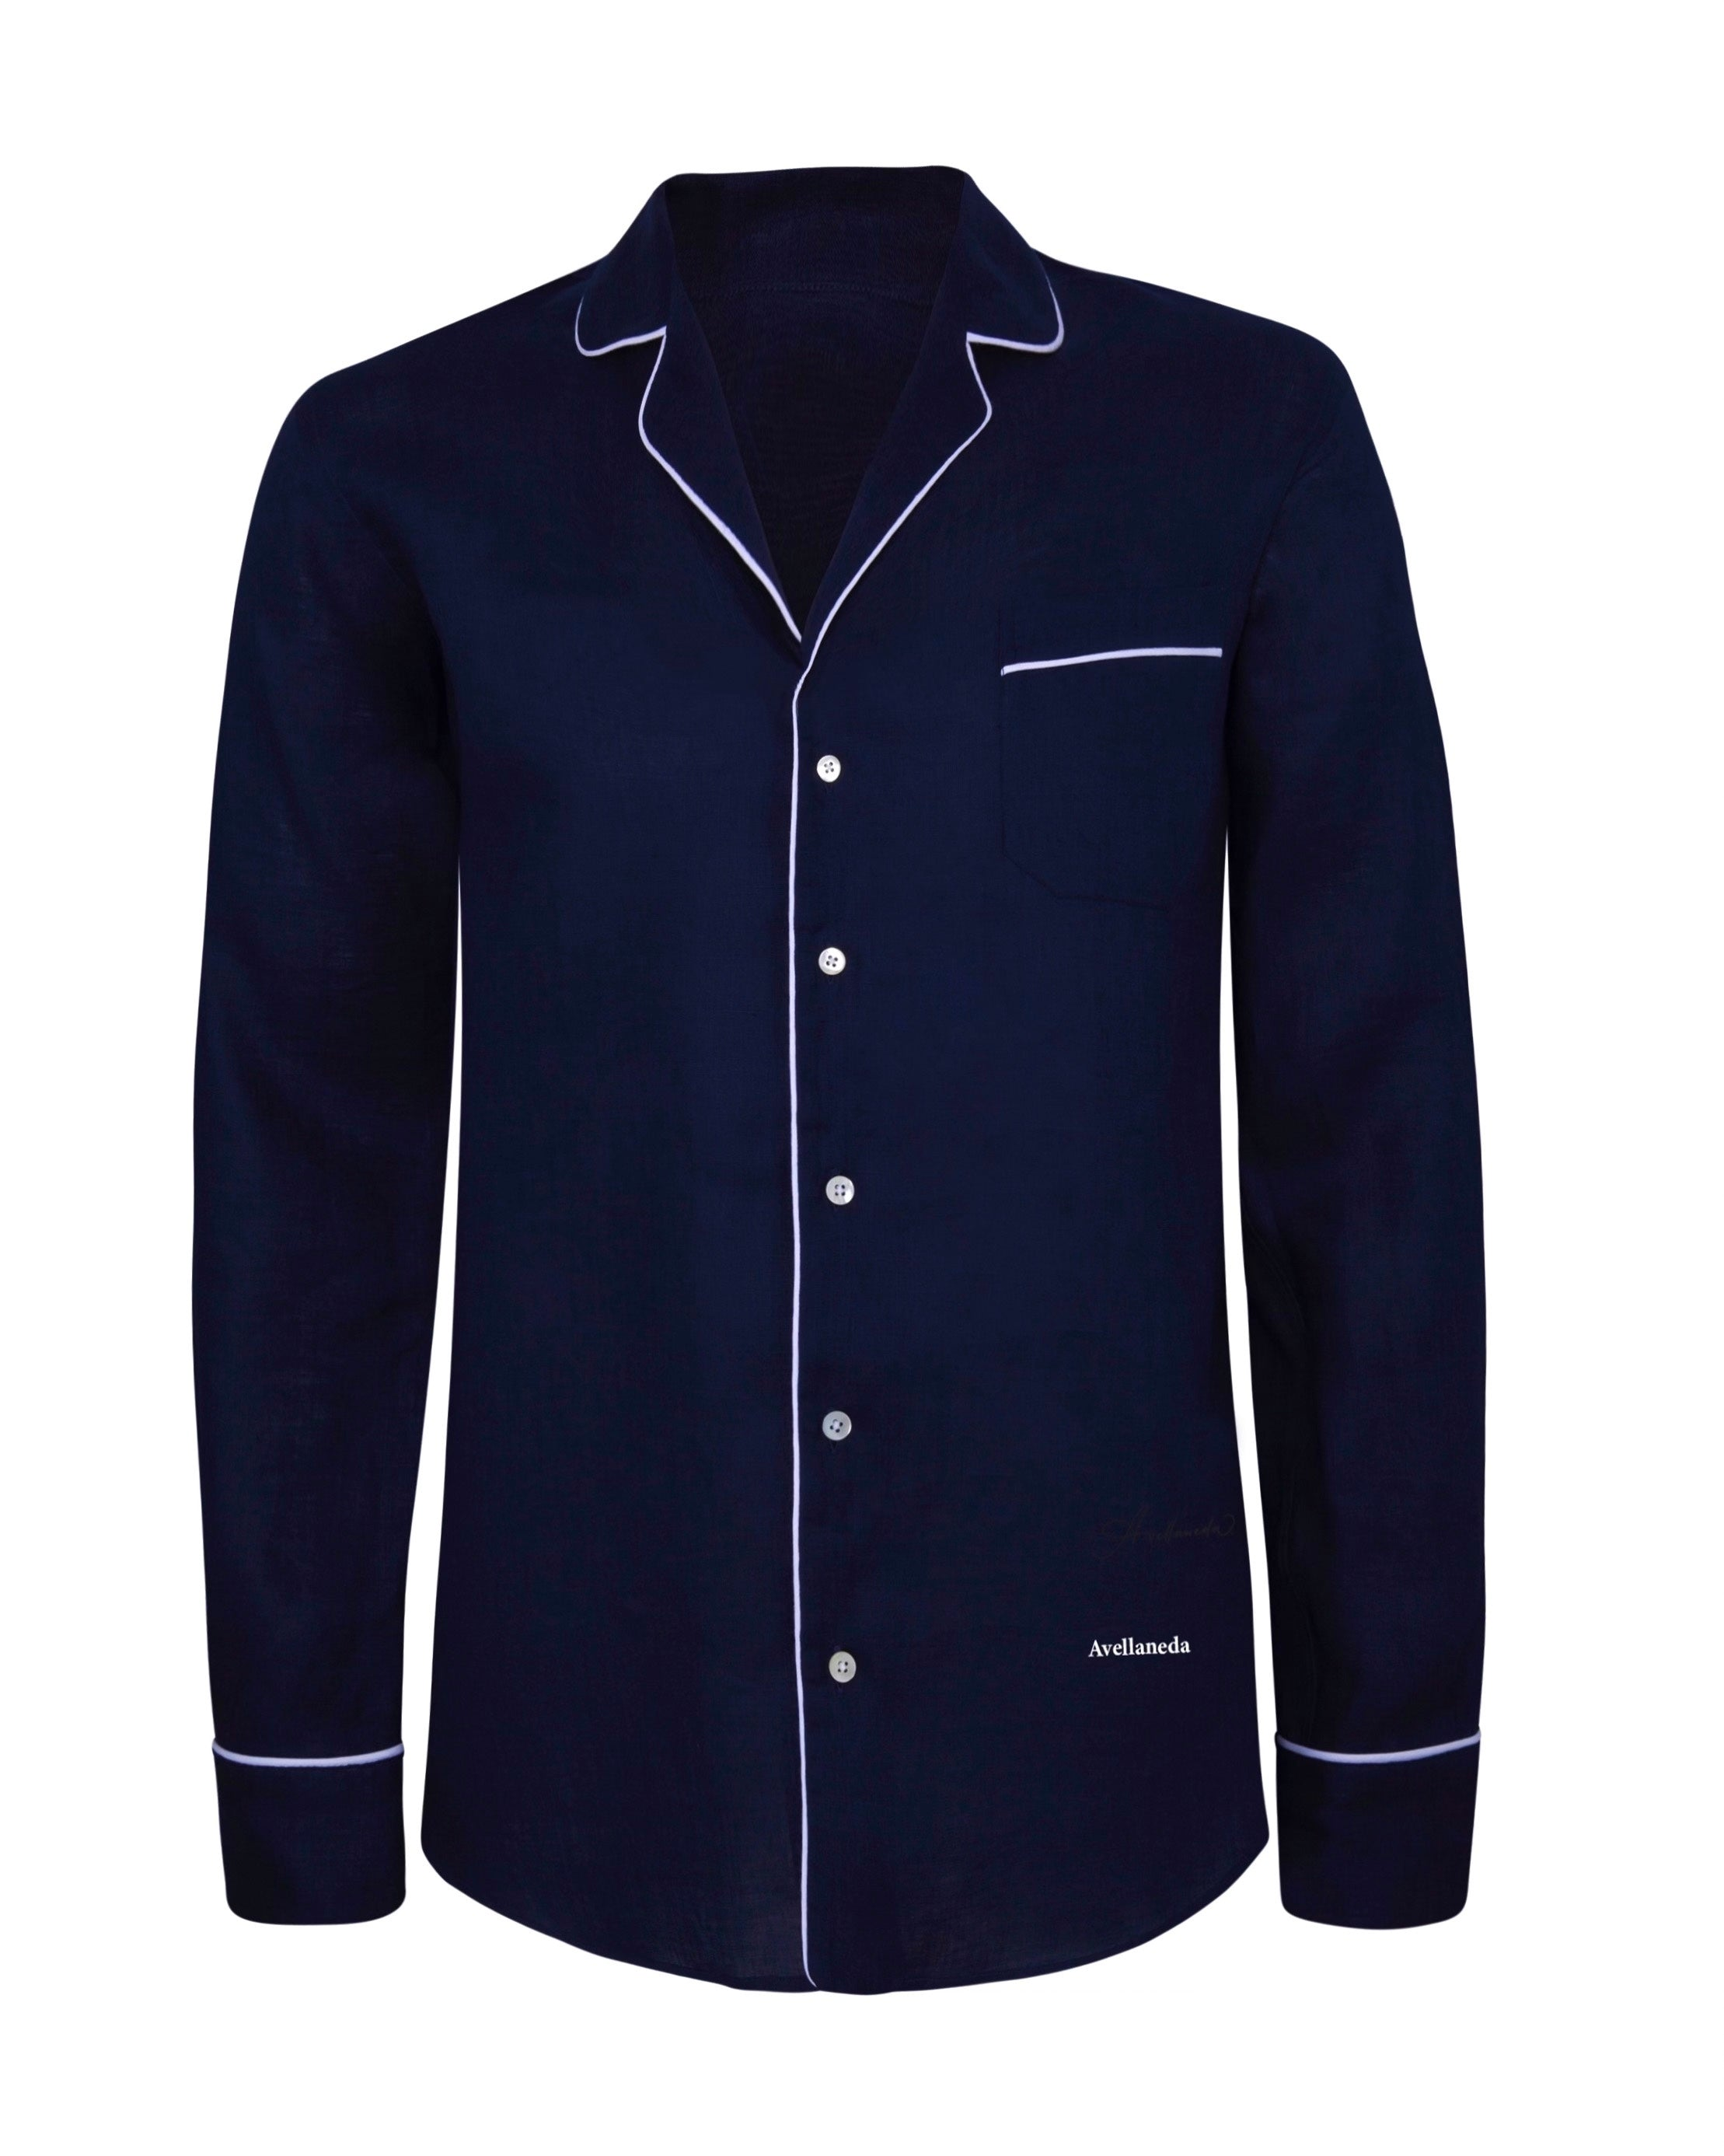 MEN'S PJ NAVY SHIRT